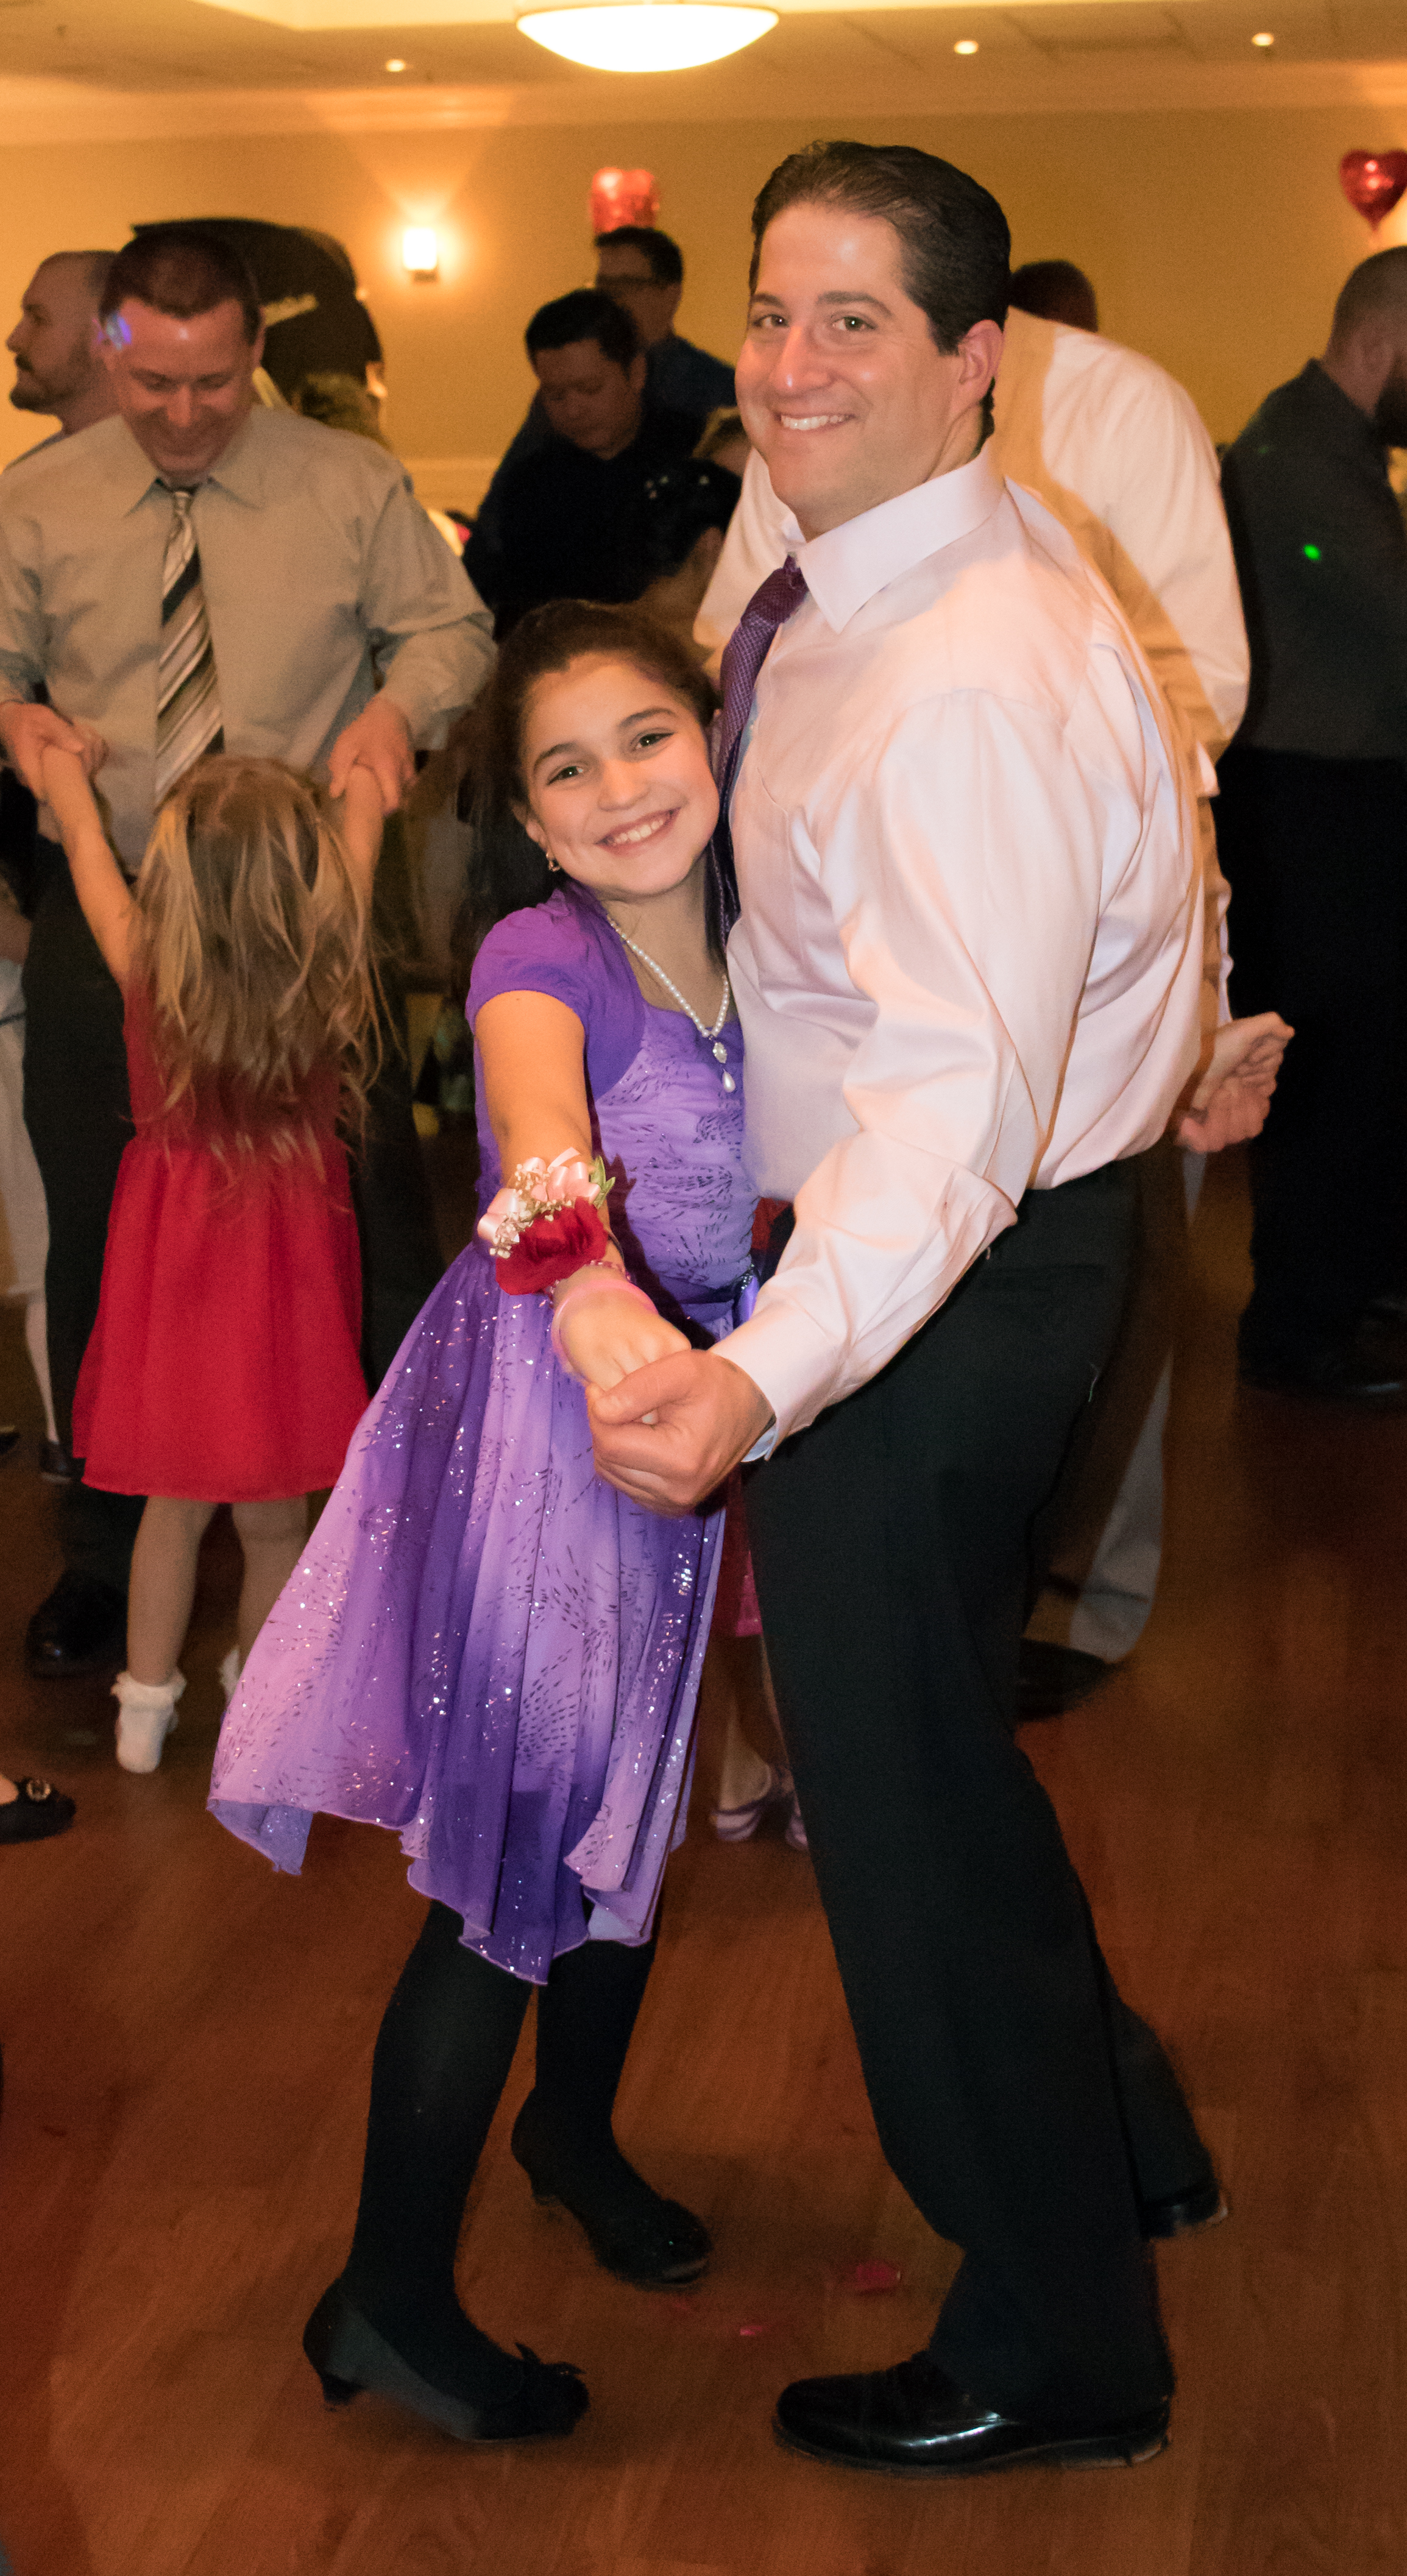 Daddy Daughter Dance - SOLD OUT - Hoffman Estates Park ...: https://www.heparks.org/event/daddy-daughter-dance-2/